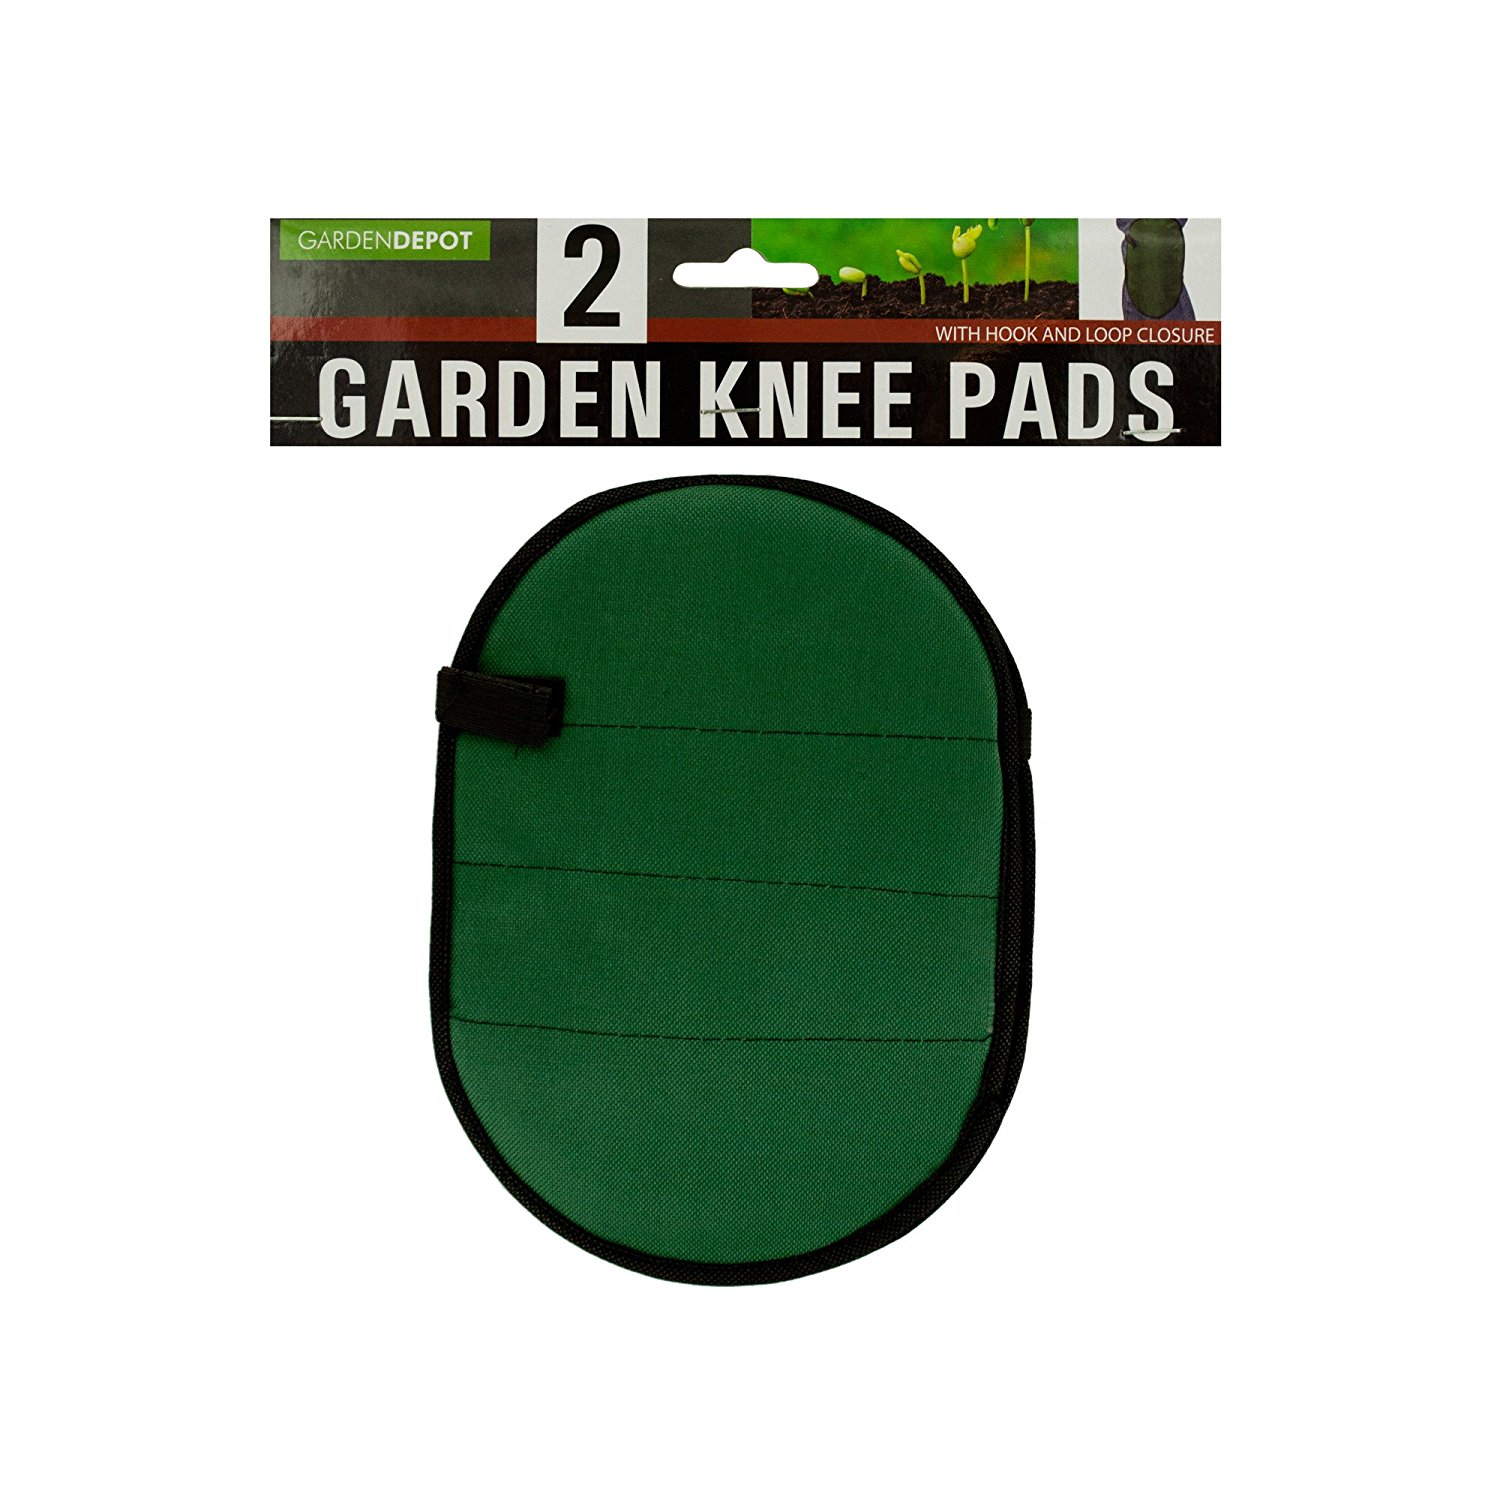 123-Wholesale - Set of 18 Adjustable Garden Knee Pads - Lawn & Garden Garden Tools